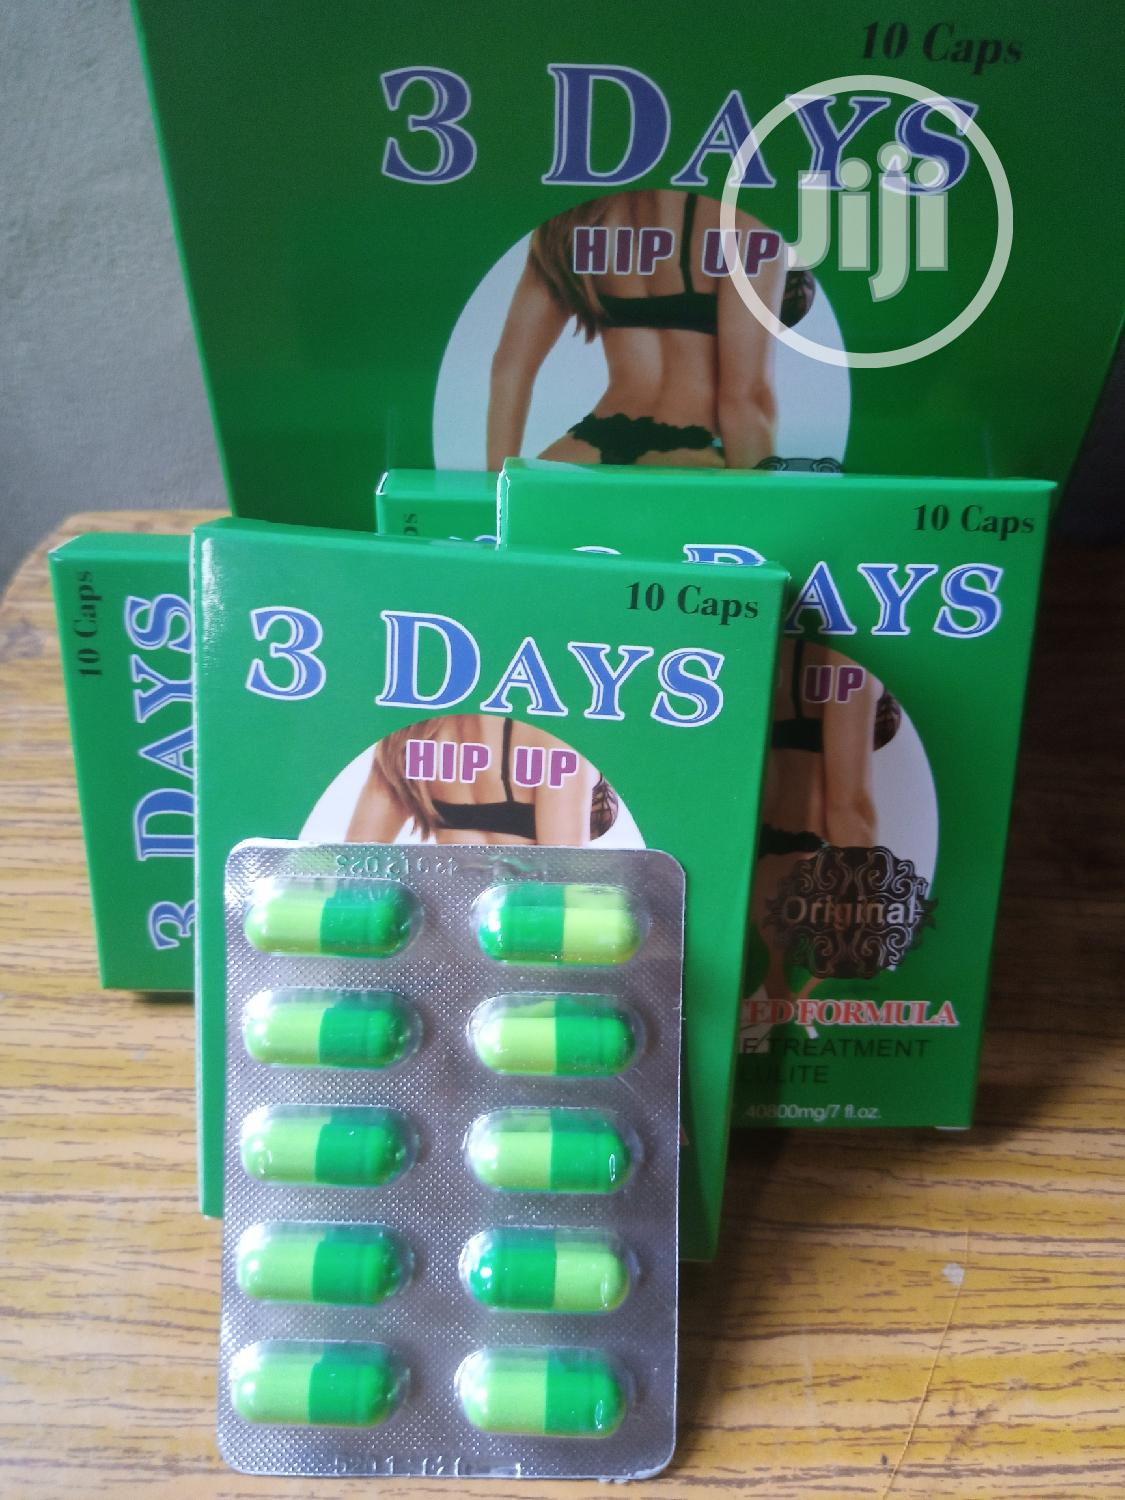 3 Days Hip Up CAPSULES (New Improved)